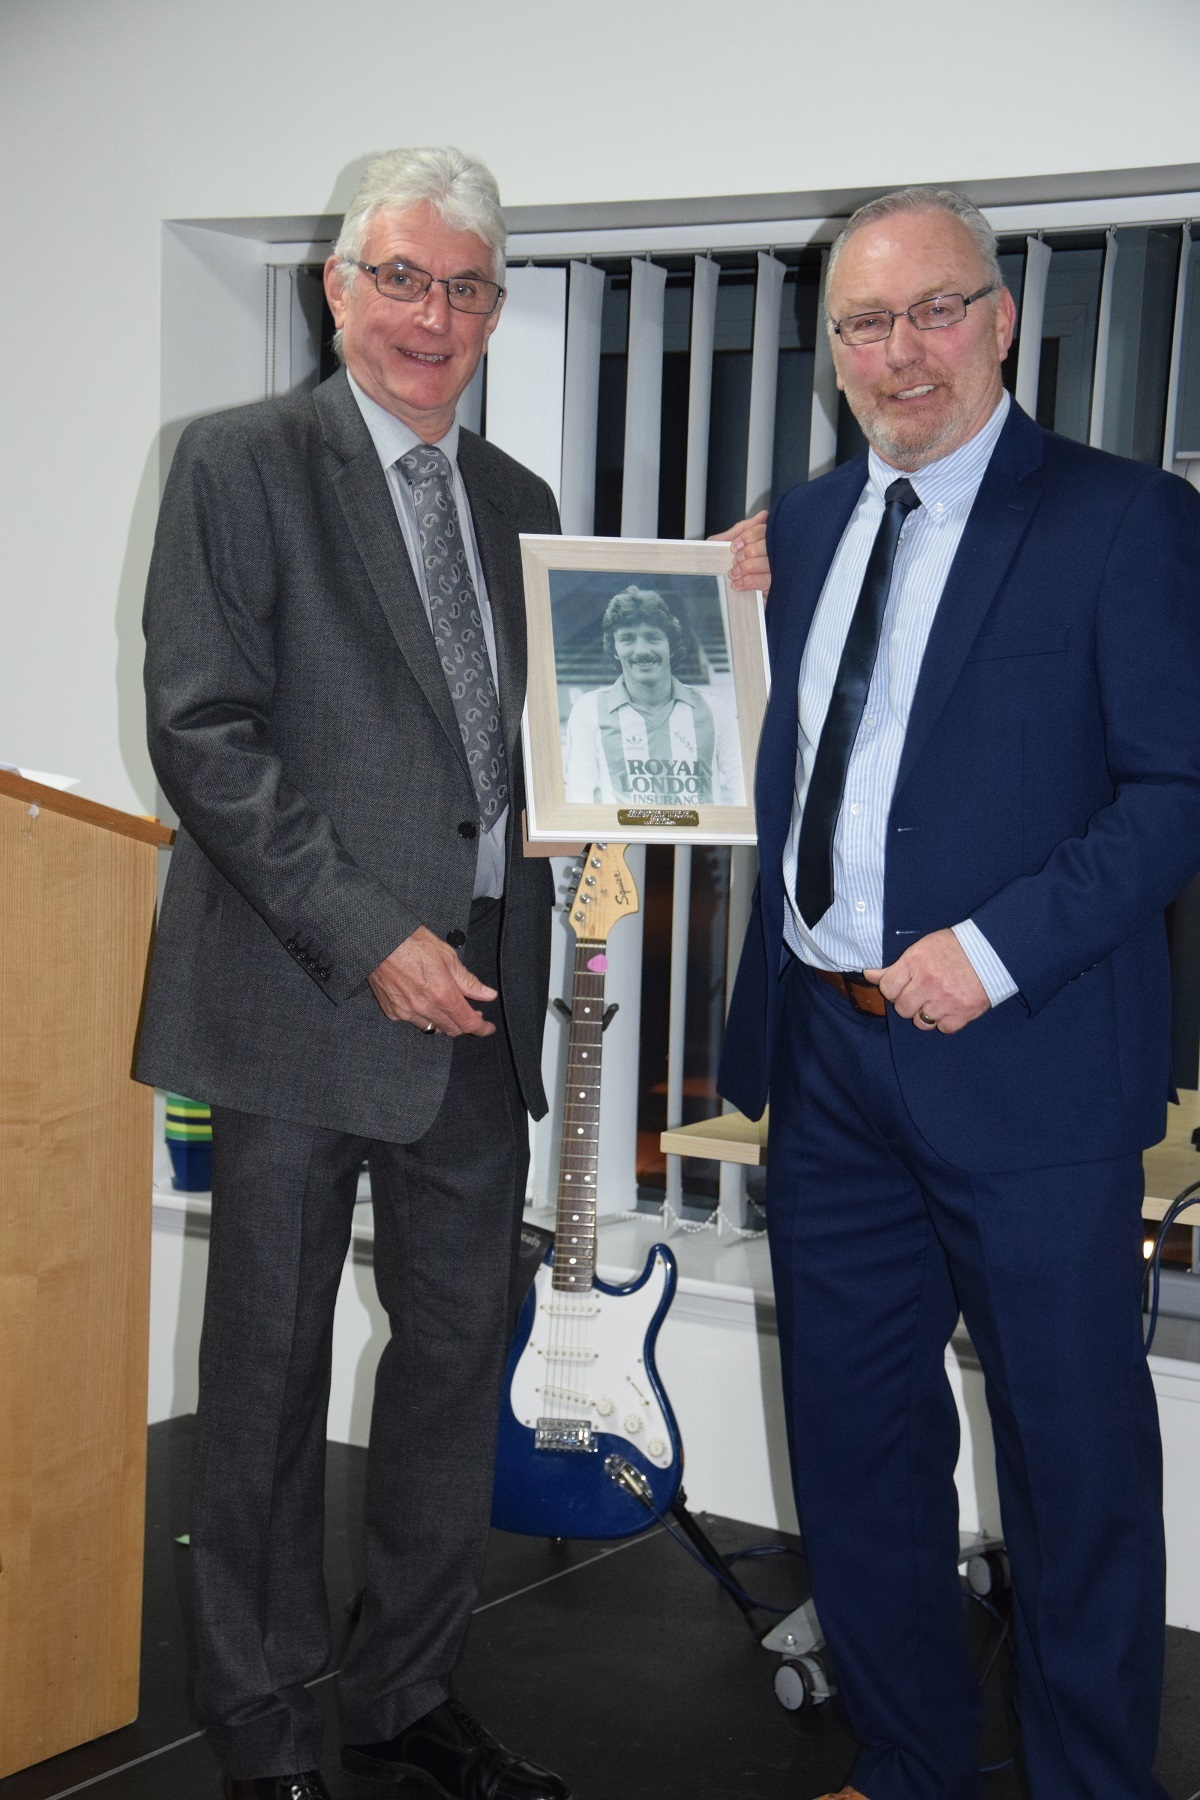 Painting a picture - former Colchester United winger Ian Allinson (right) with Former Players Association chairman Barrie Smith following his induction into the club's Hall of Fame Picture: WWW.CU-FC.COM